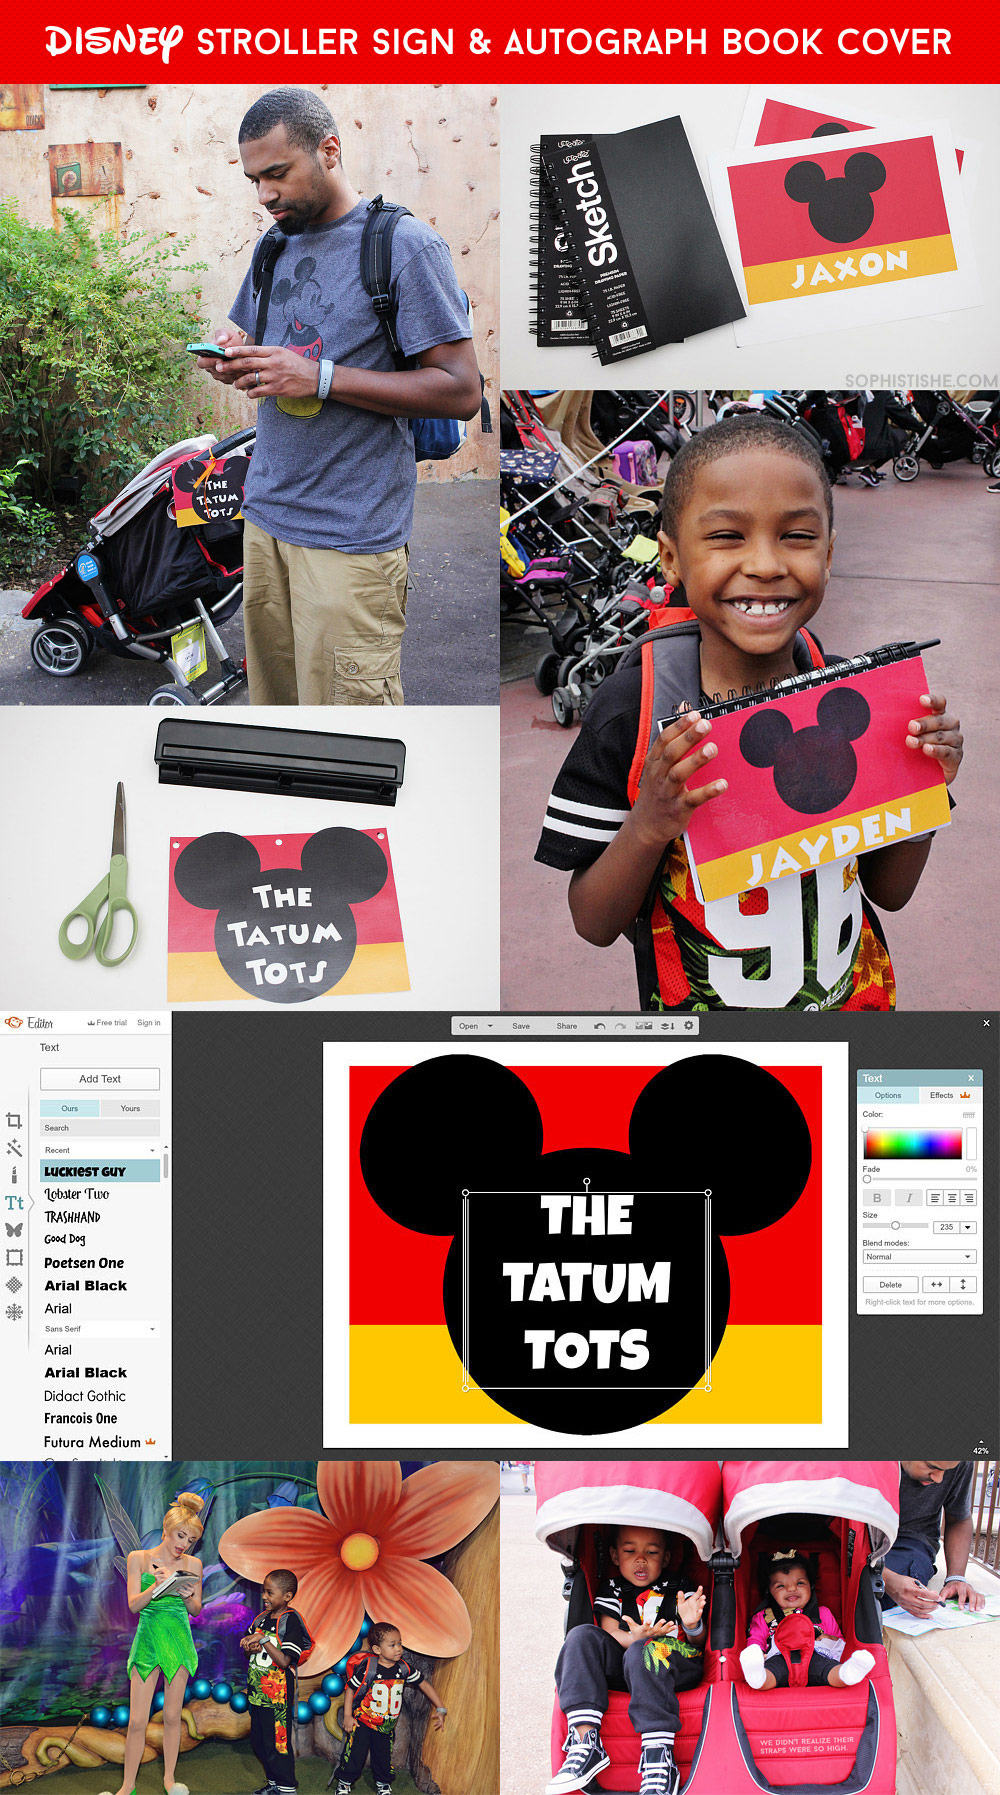 DIY Disney Autograph Book & Stroller Sign - stand out during your Disney vacation!